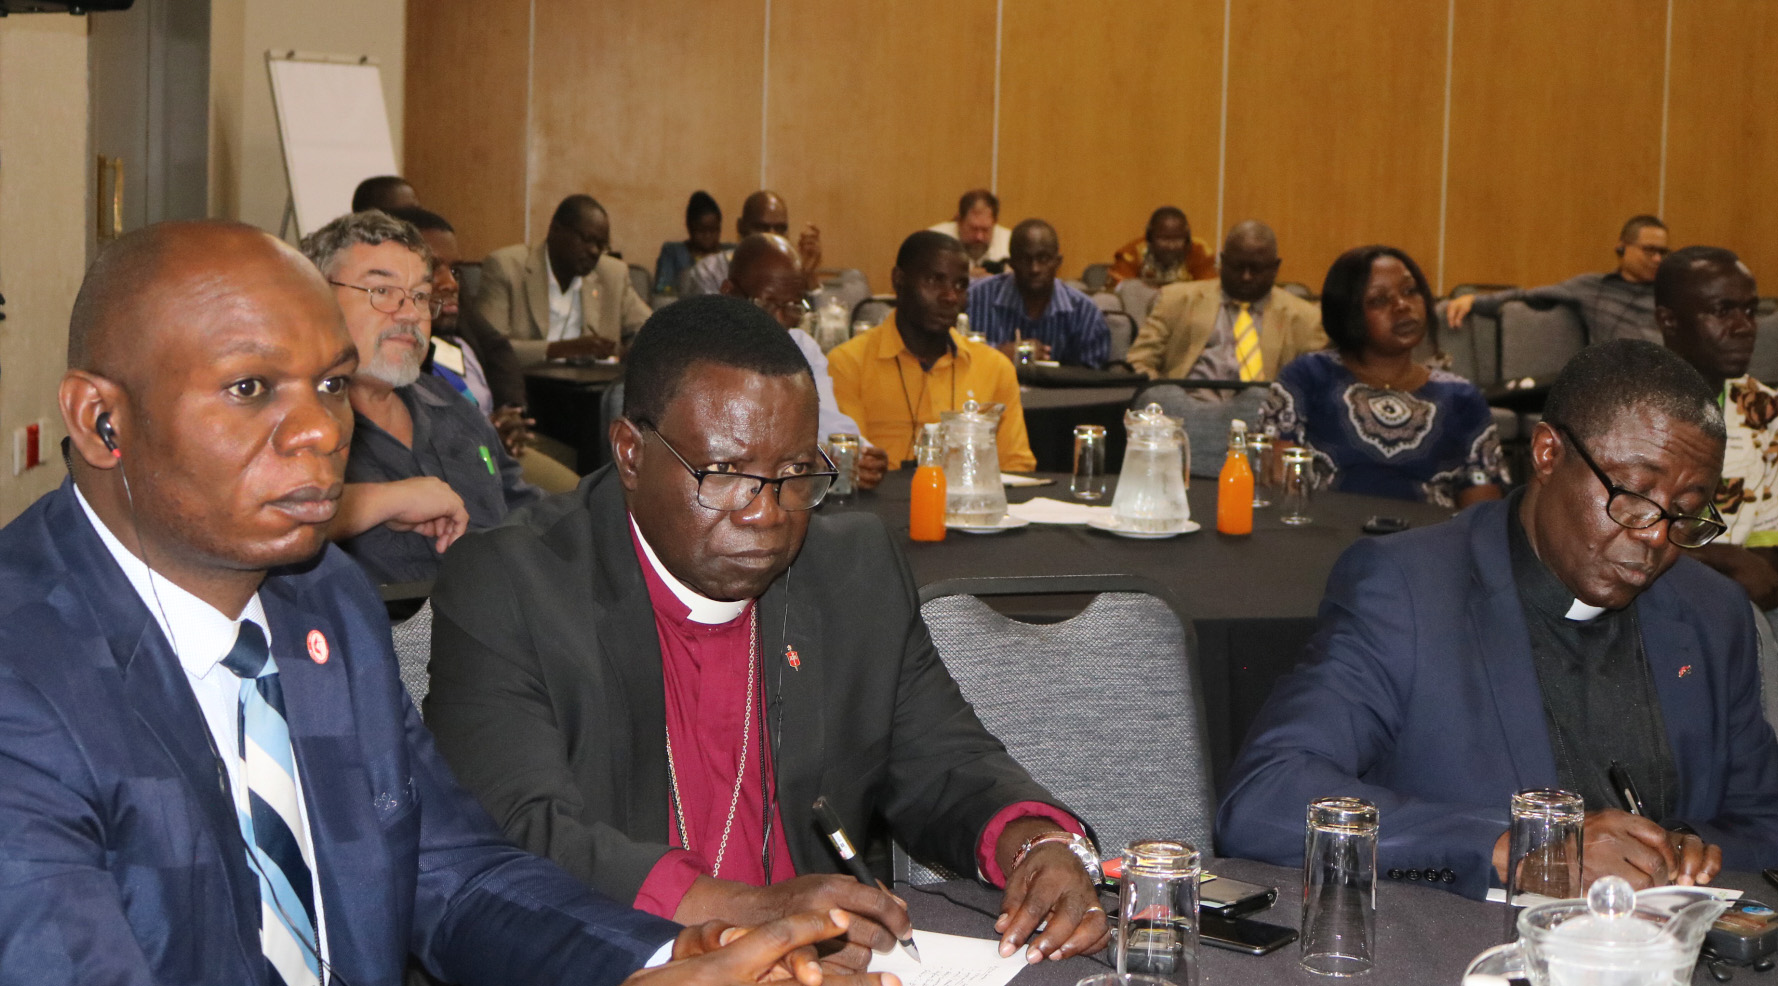 Bishop Kasap Owan from the South Congo Episcopal area (center) and delegates listen during the United Methodist Board of Global Ministries/United Methodist Committee on Relief agricultural summit in Johannesburg. Photo by Eveline Chikwanah.